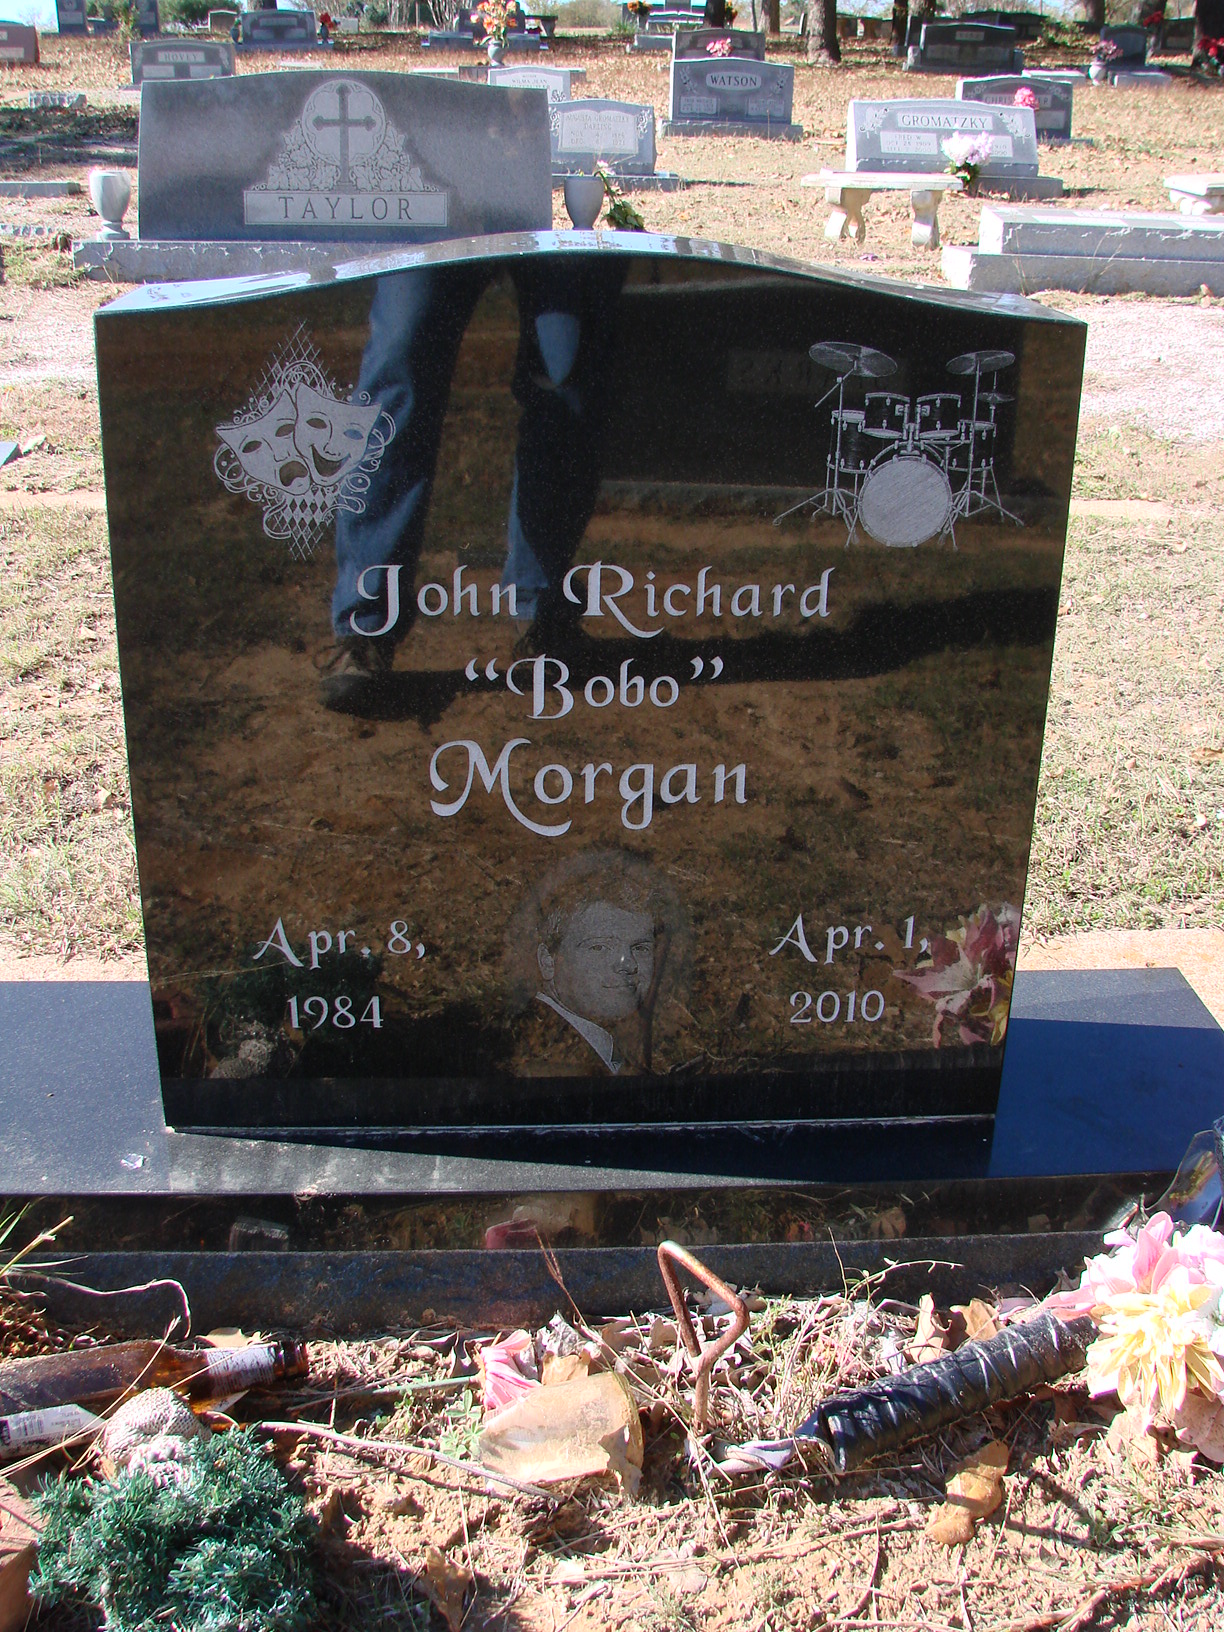 John Richard Bobo Morgan